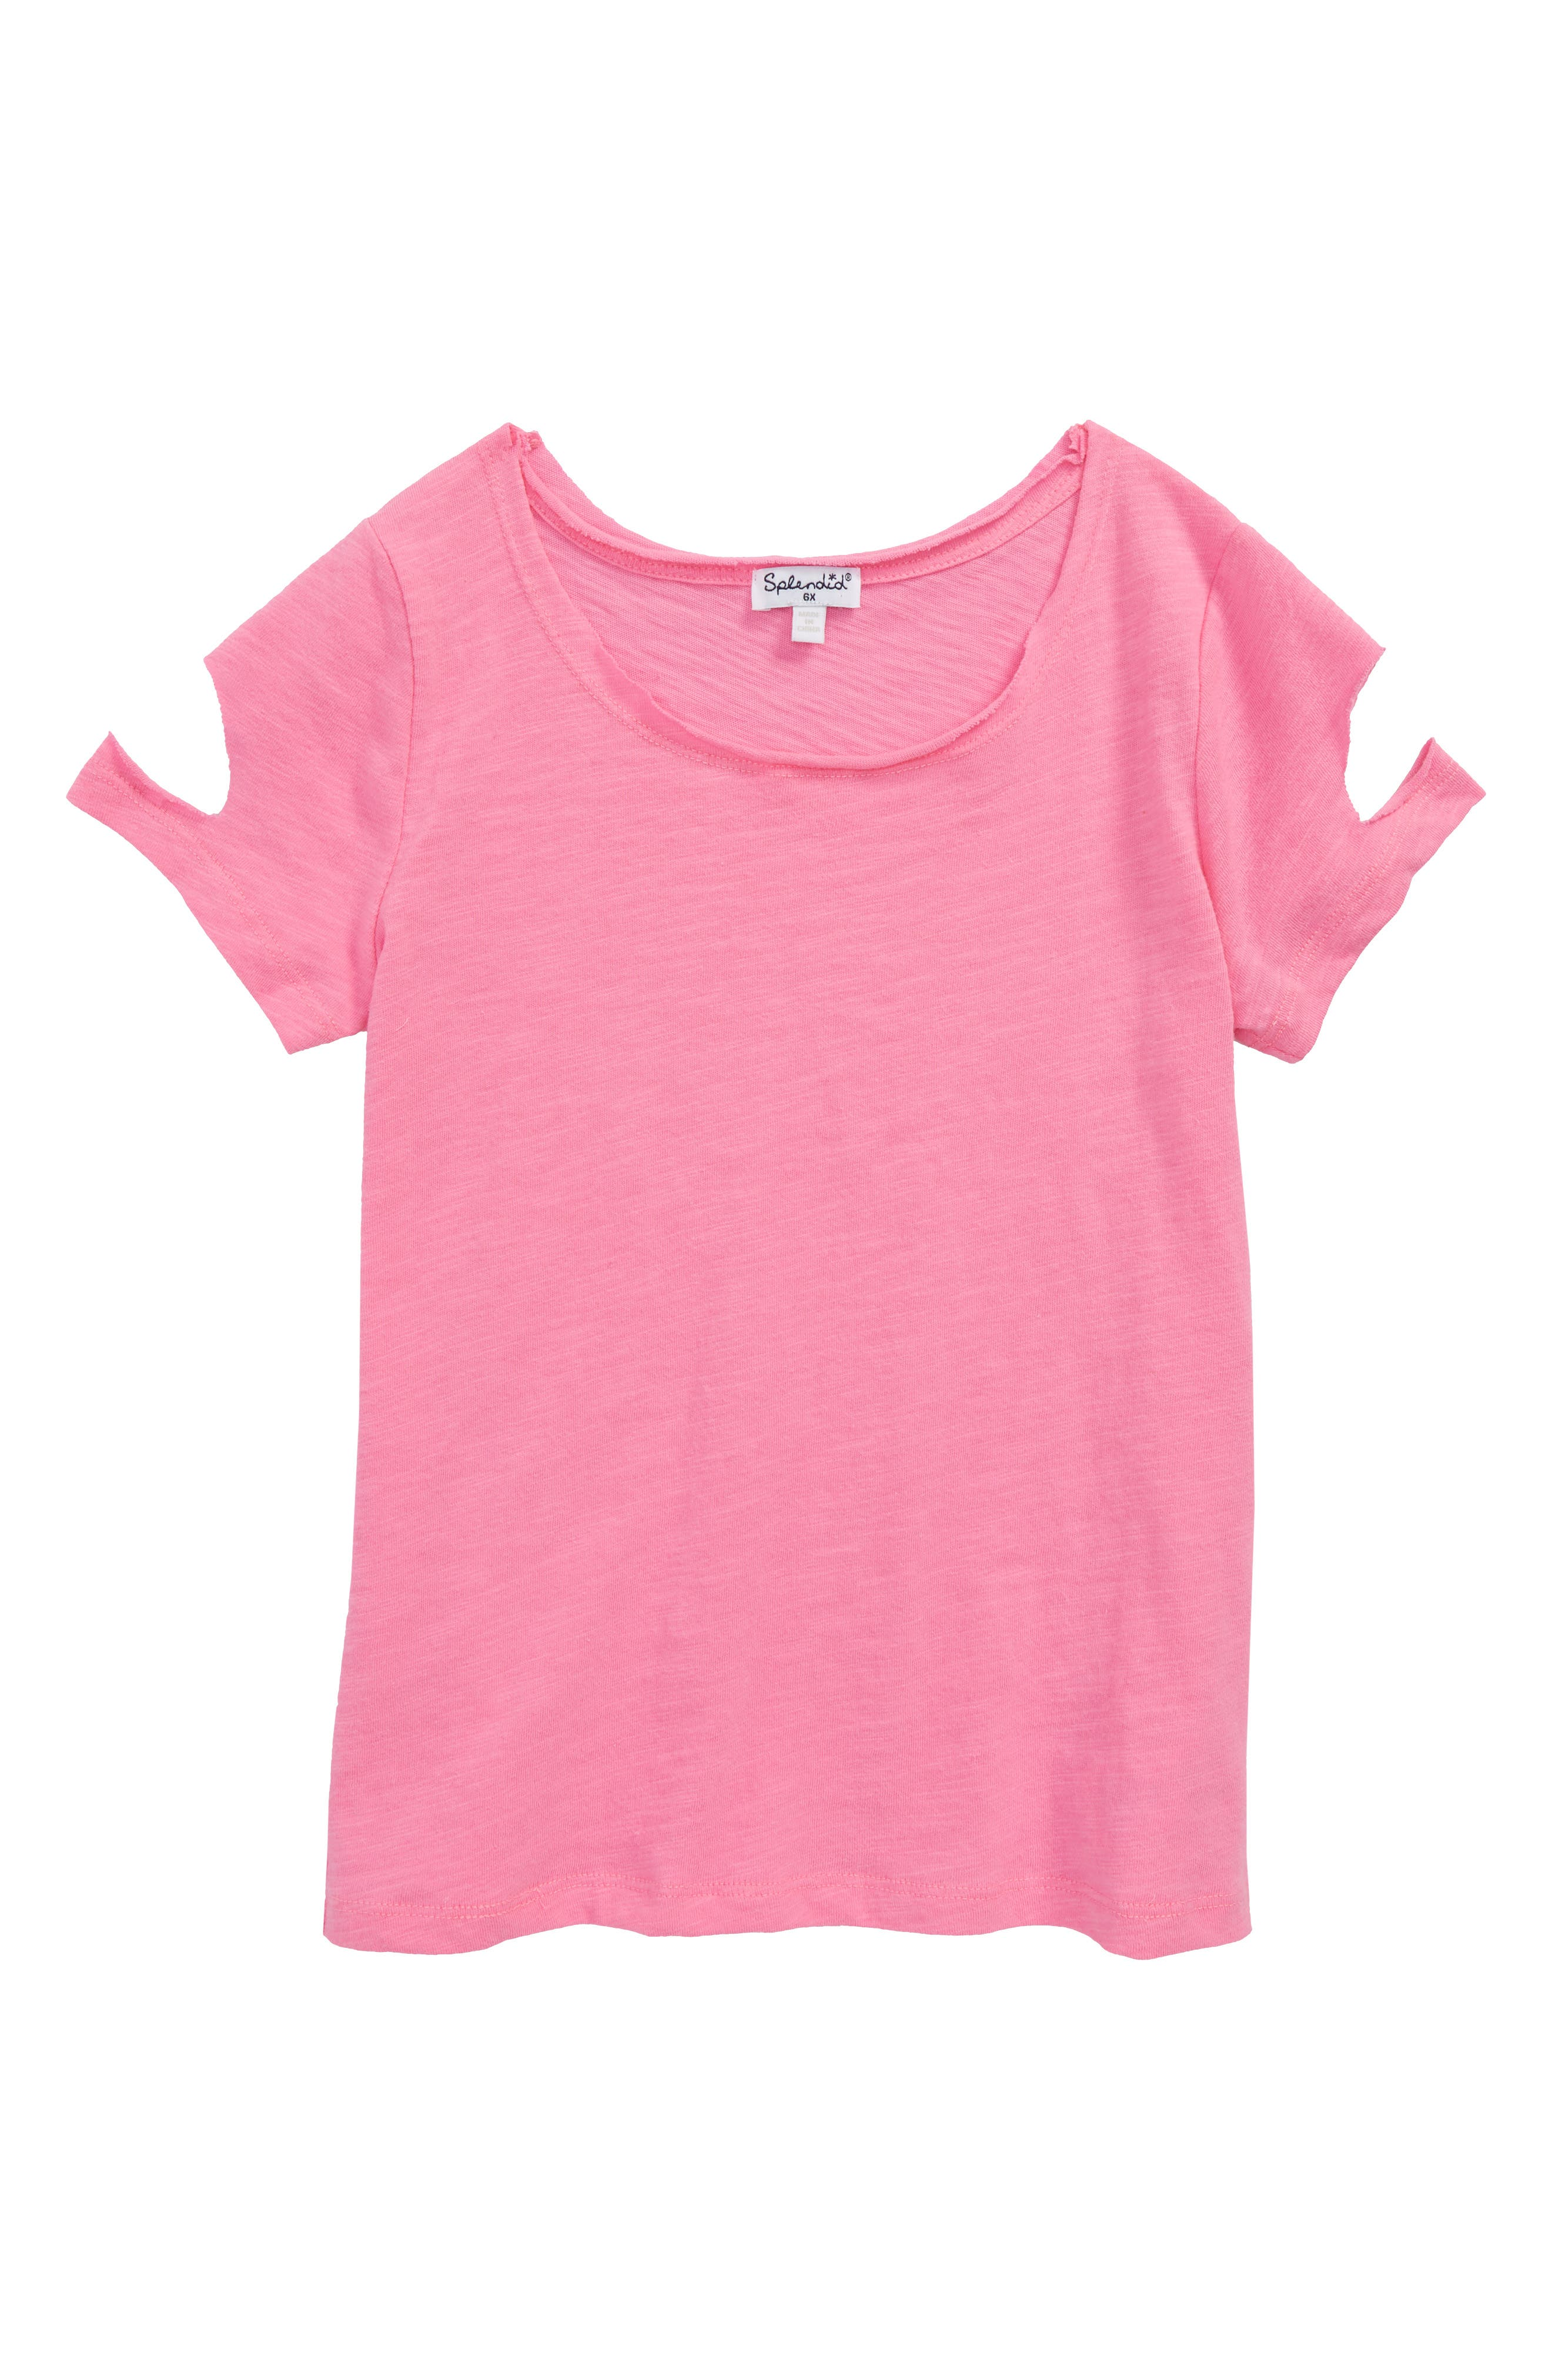 Cutout Tee,                         Main,                         color, Wild Orchid